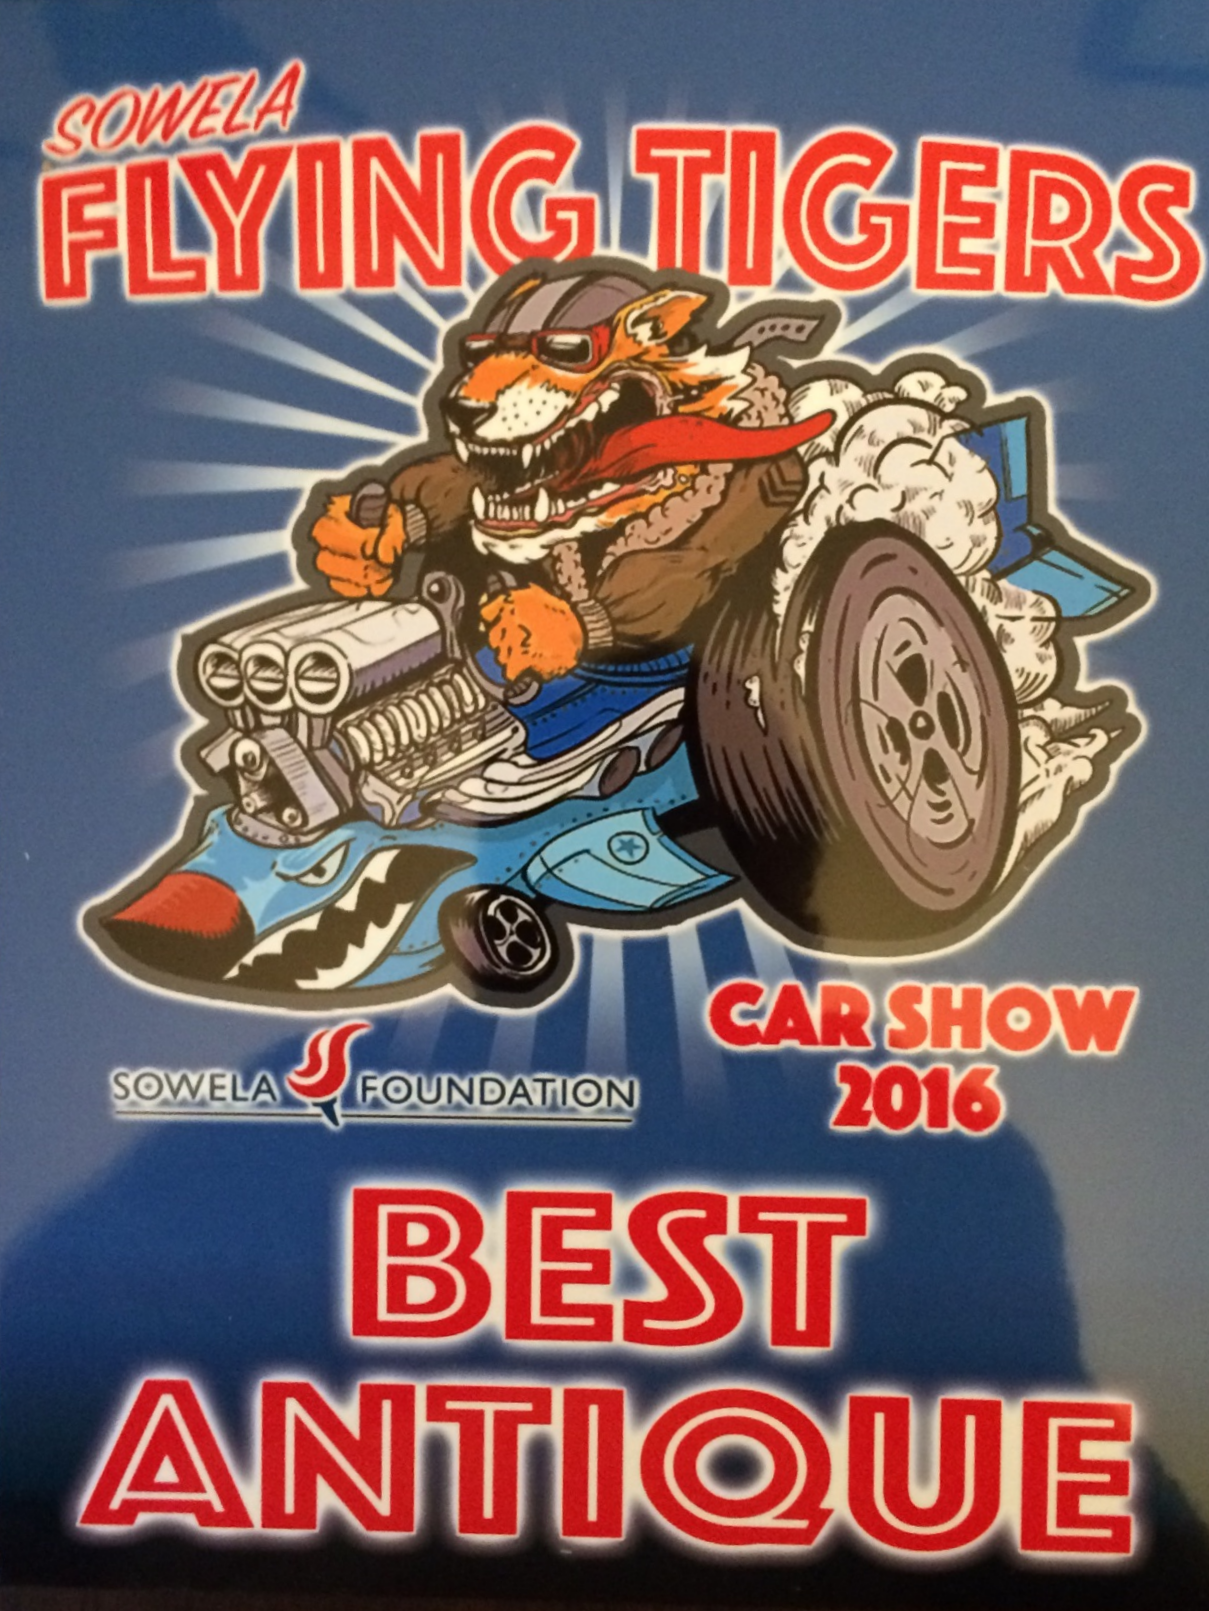 Sowela Flying Tigers Award for Best Antique